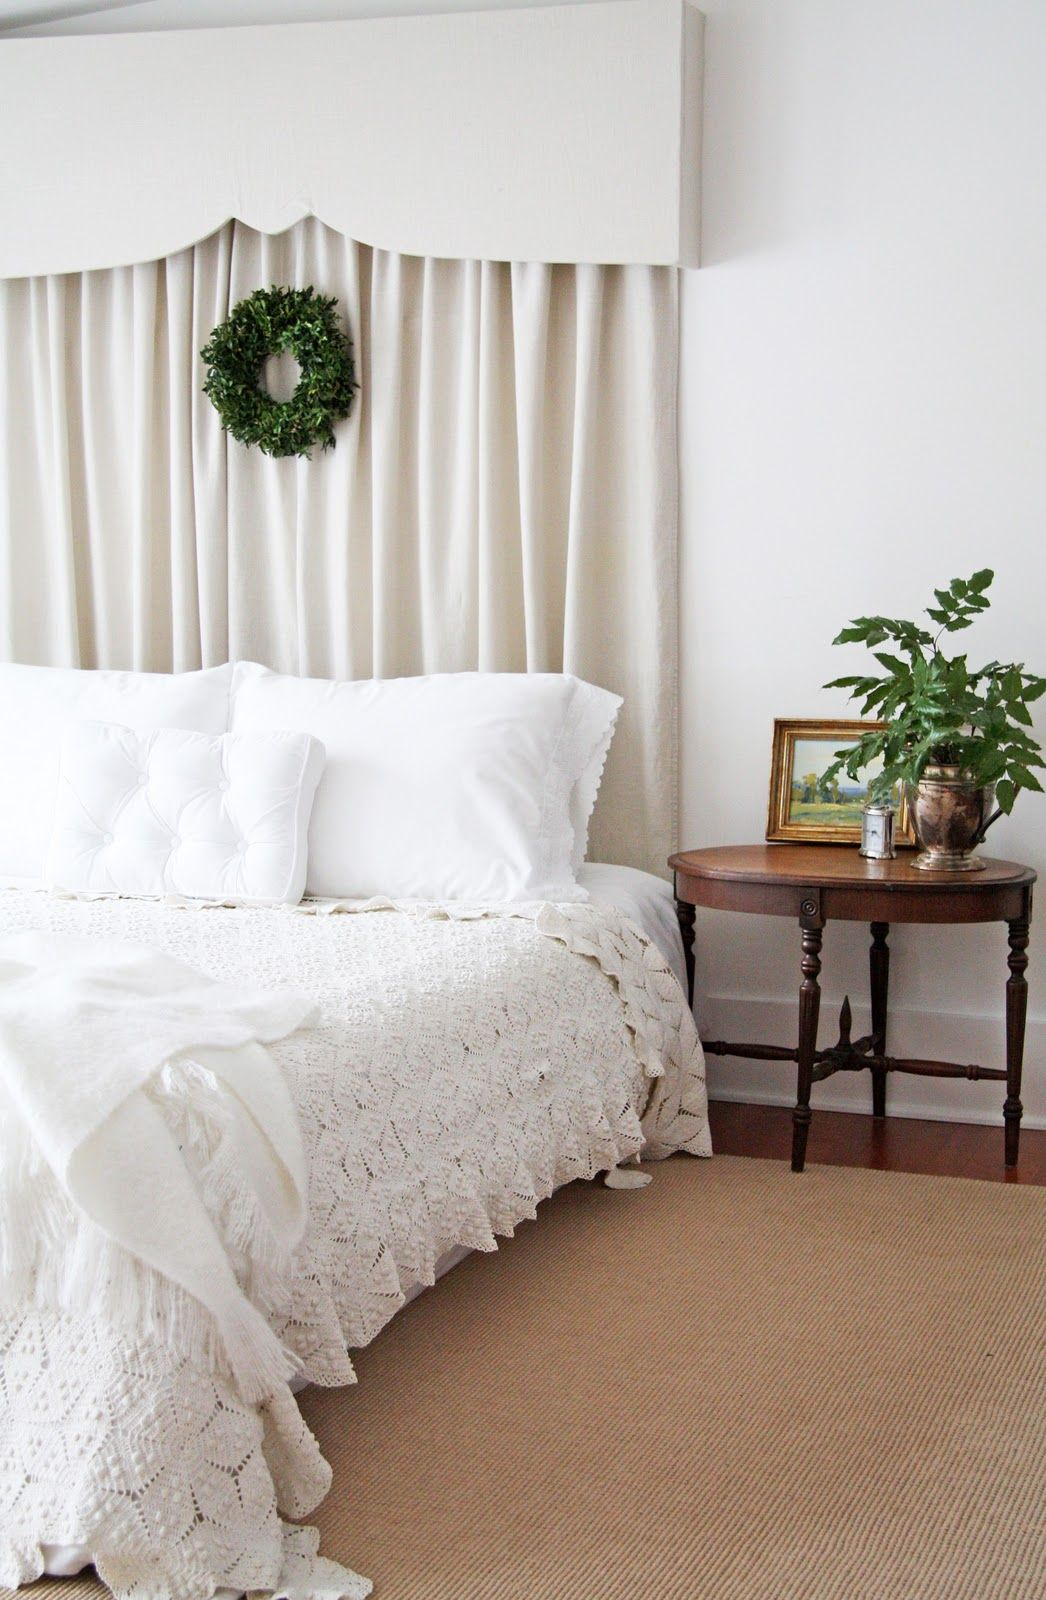 Bed head against window  pelmet u bedcover  for the home  pinterest  country farmhouse